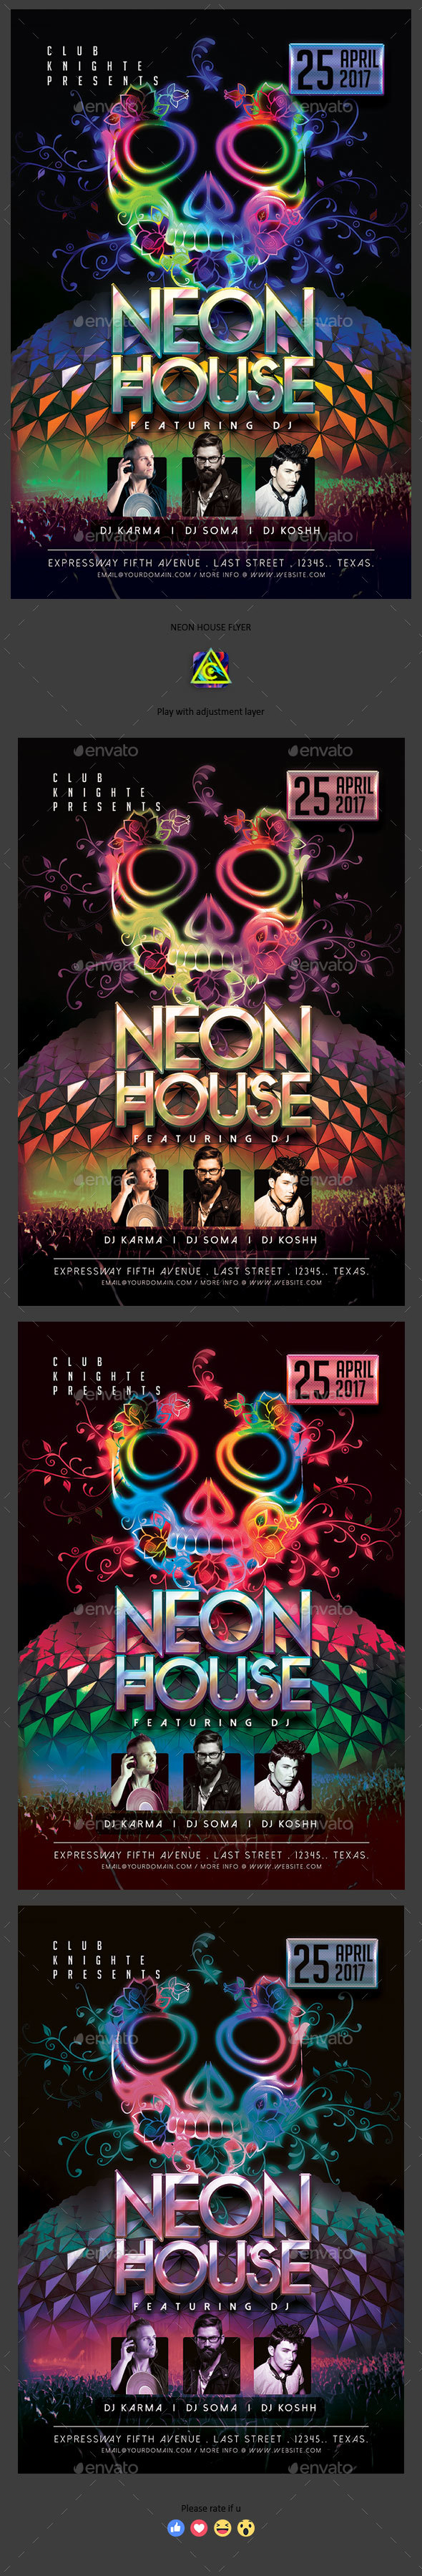 Neon House Flyer - Clubs & Parties Events